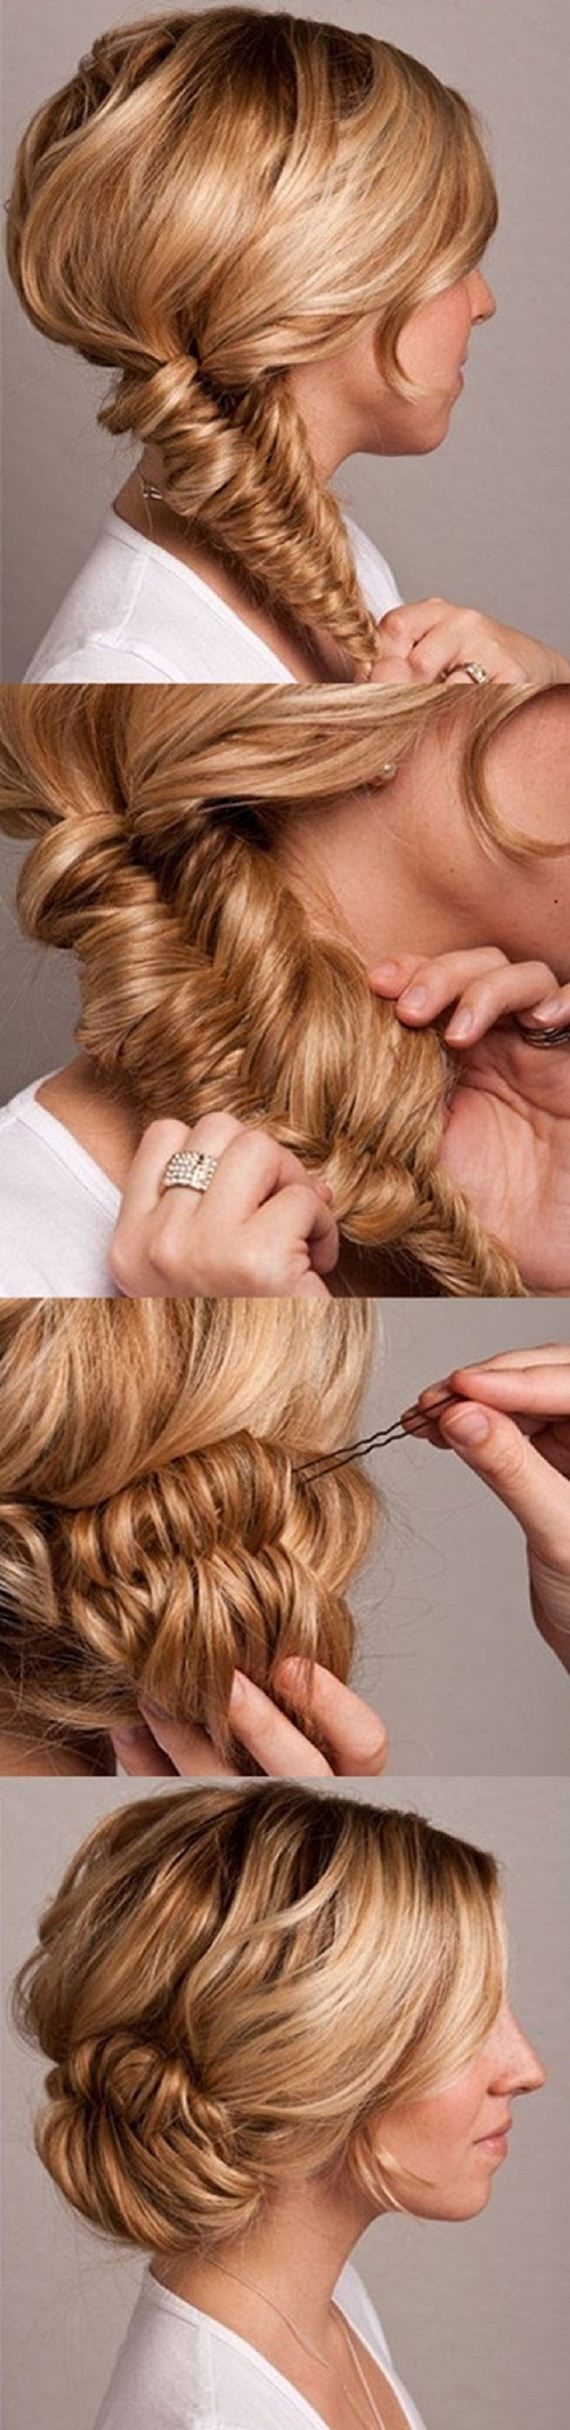 04-Quick-And-Easy-Hair-Buns